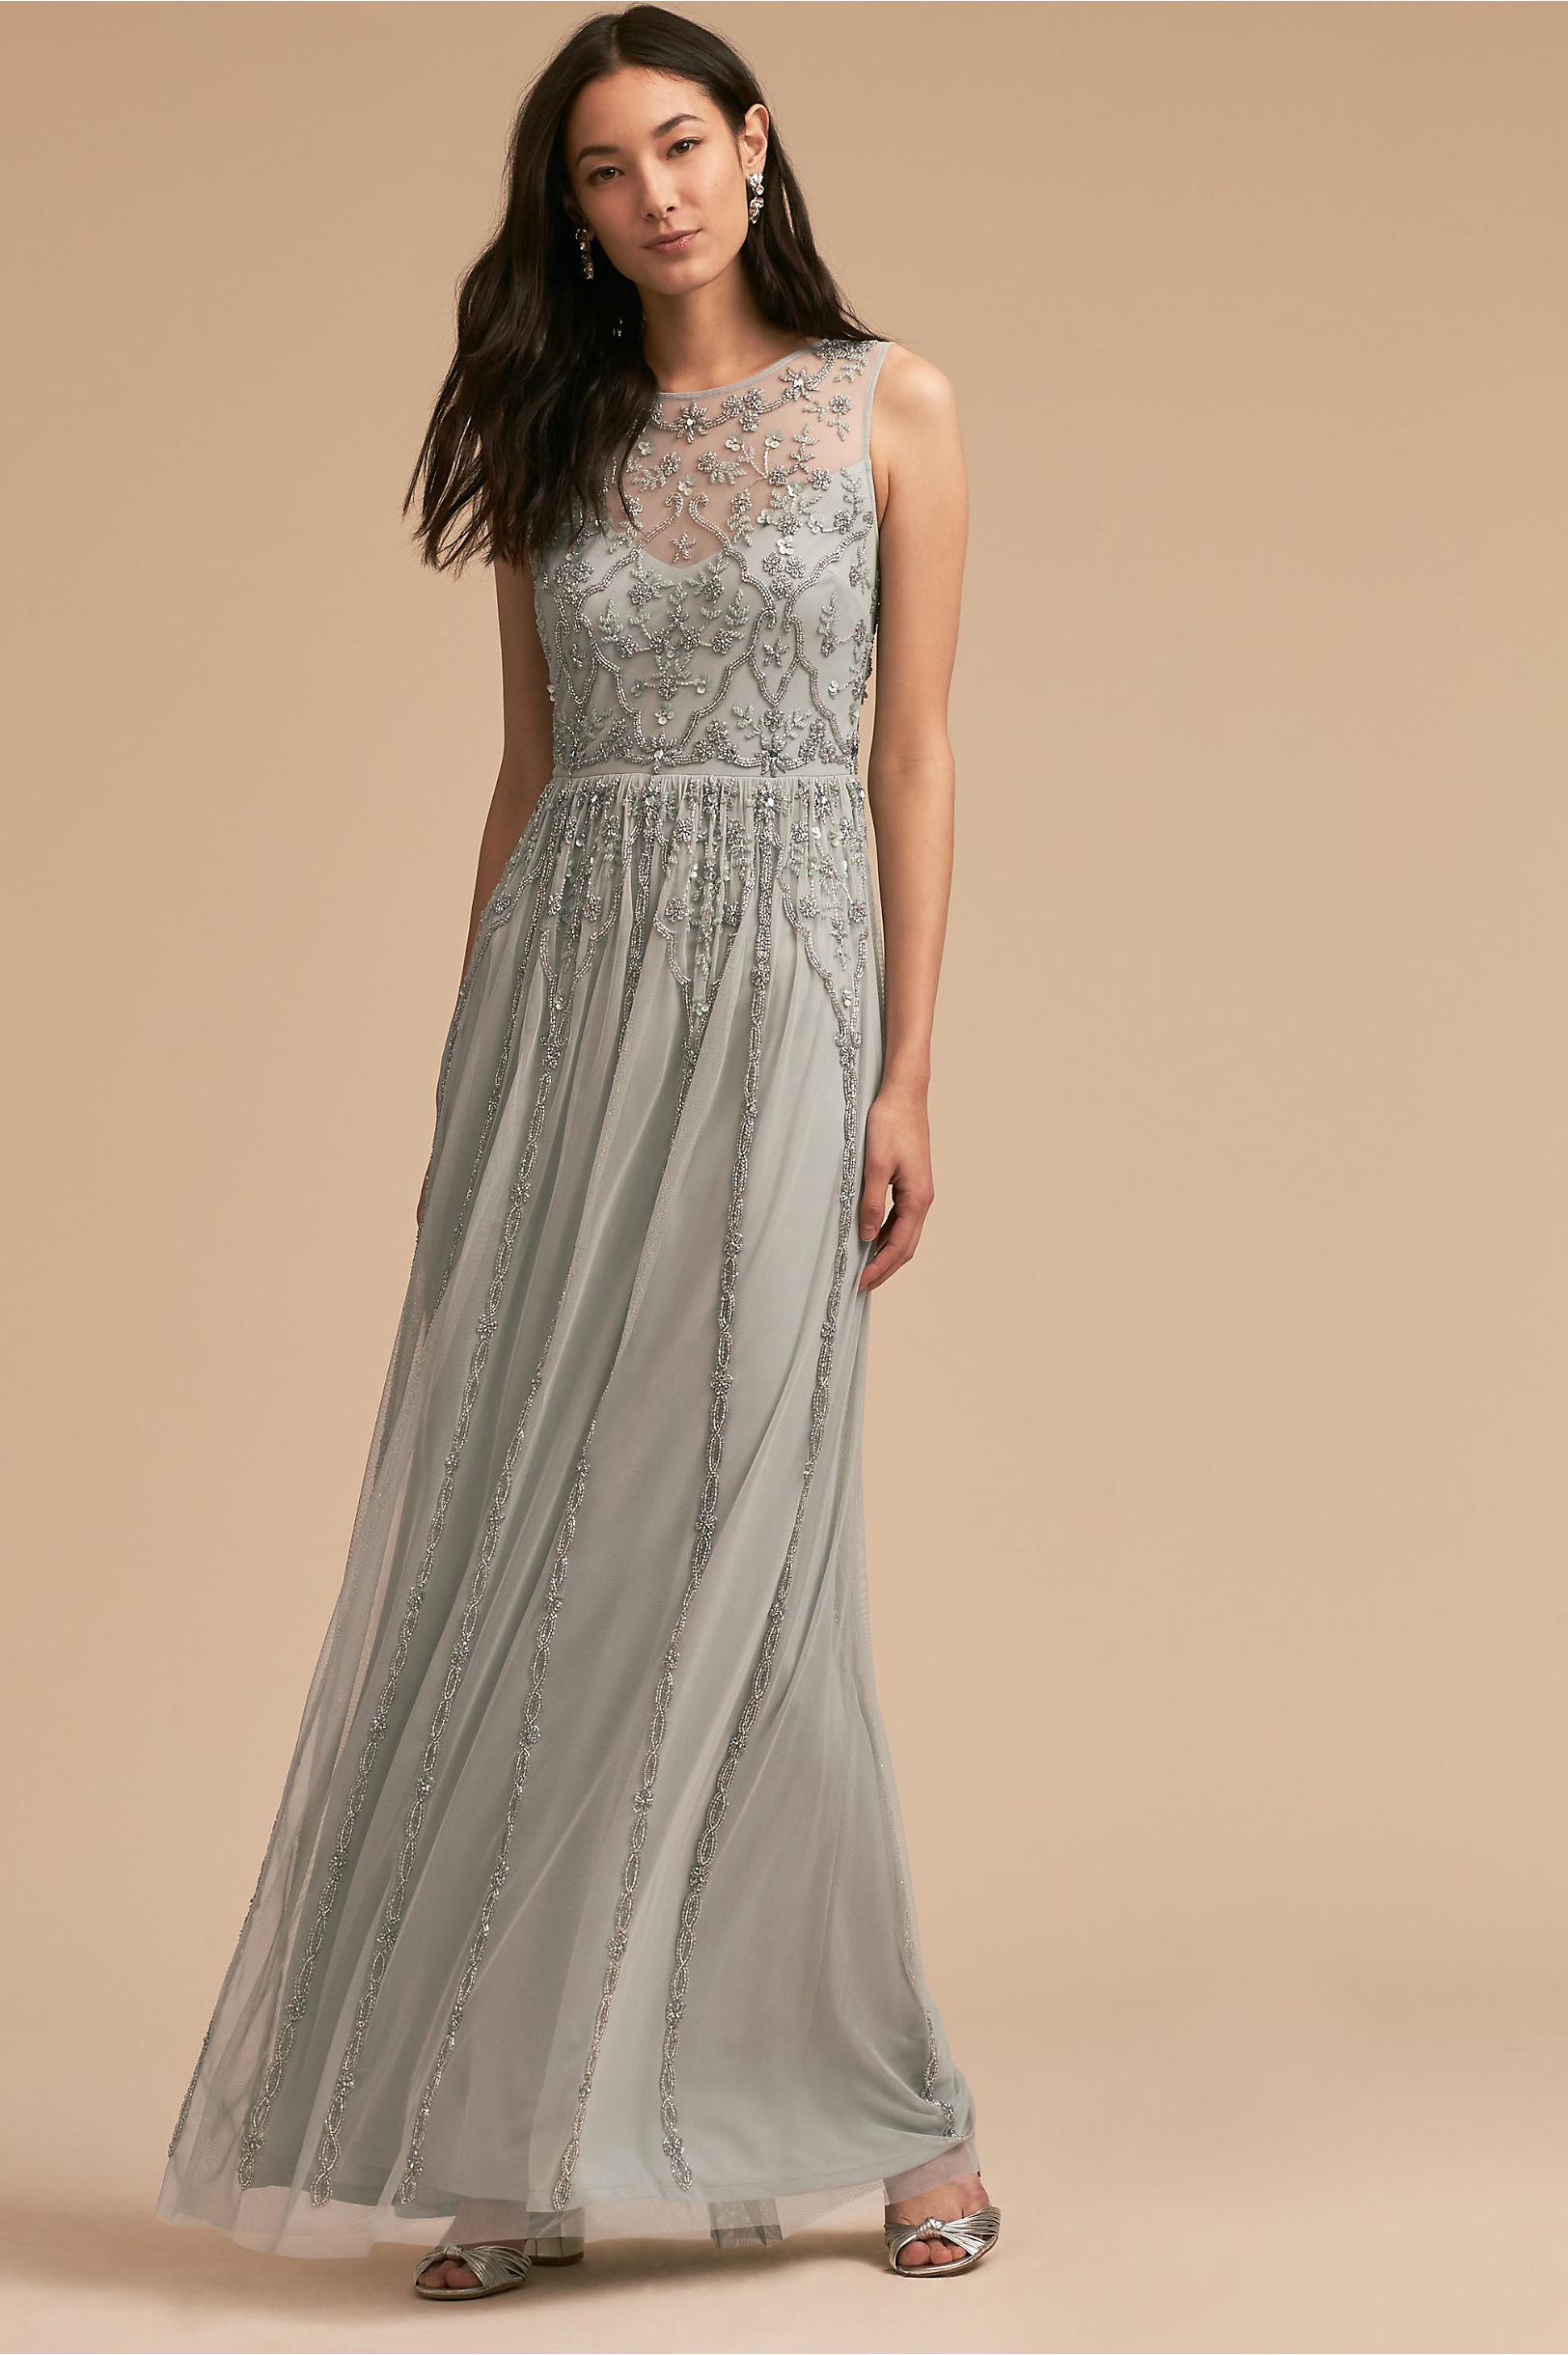 Bridesmaid dresses gowns vintage inspired bhldn eliza dress eliza dress ombrellifo Images